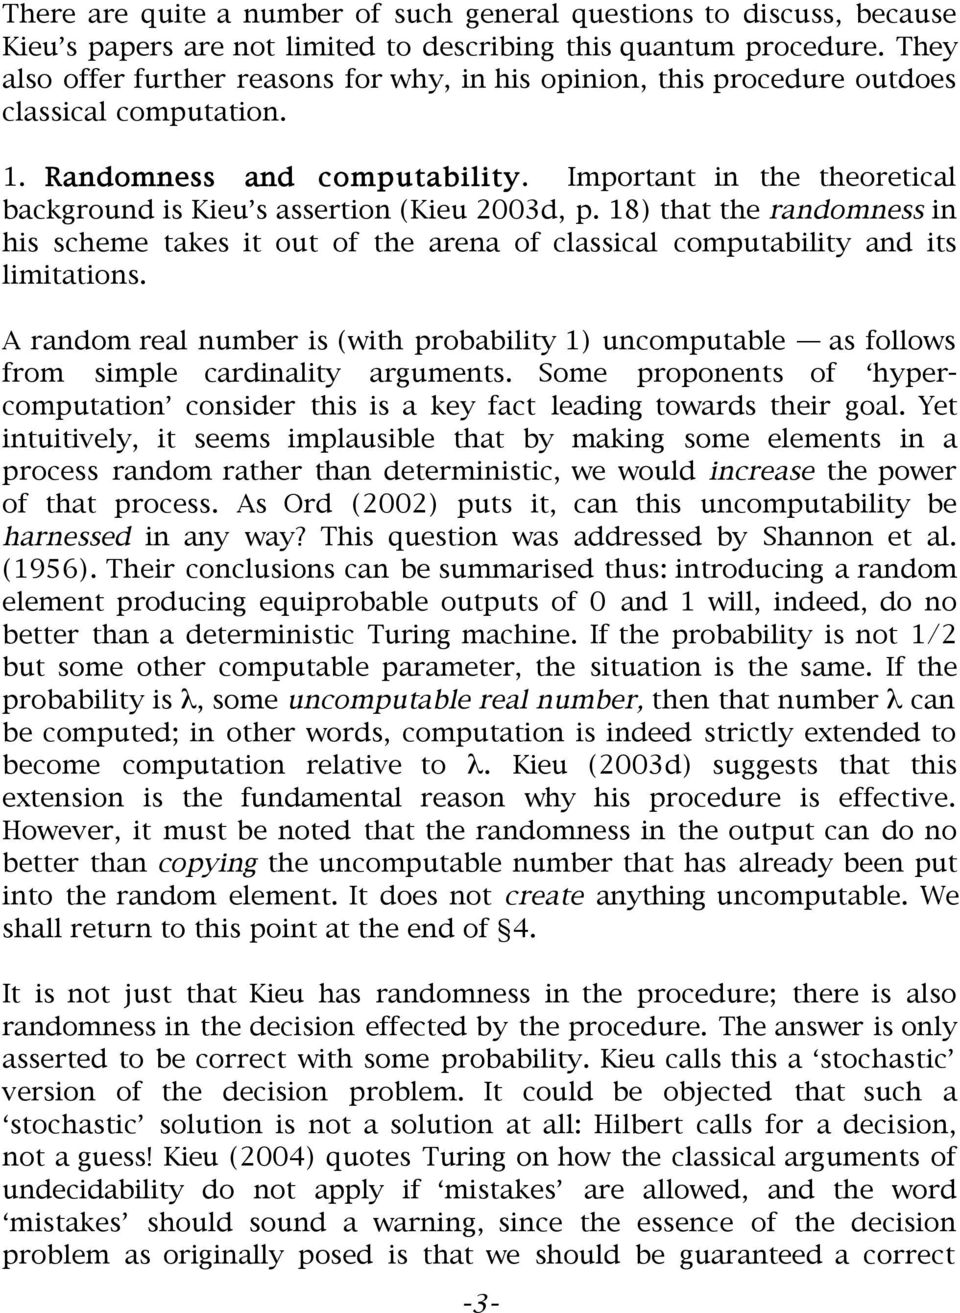 Important in the theoretical background is Kieu s assertion (Kieu 2003d, p. 18) that the randomness in his scheme takes it out of the arena of classical computability and its limitations.